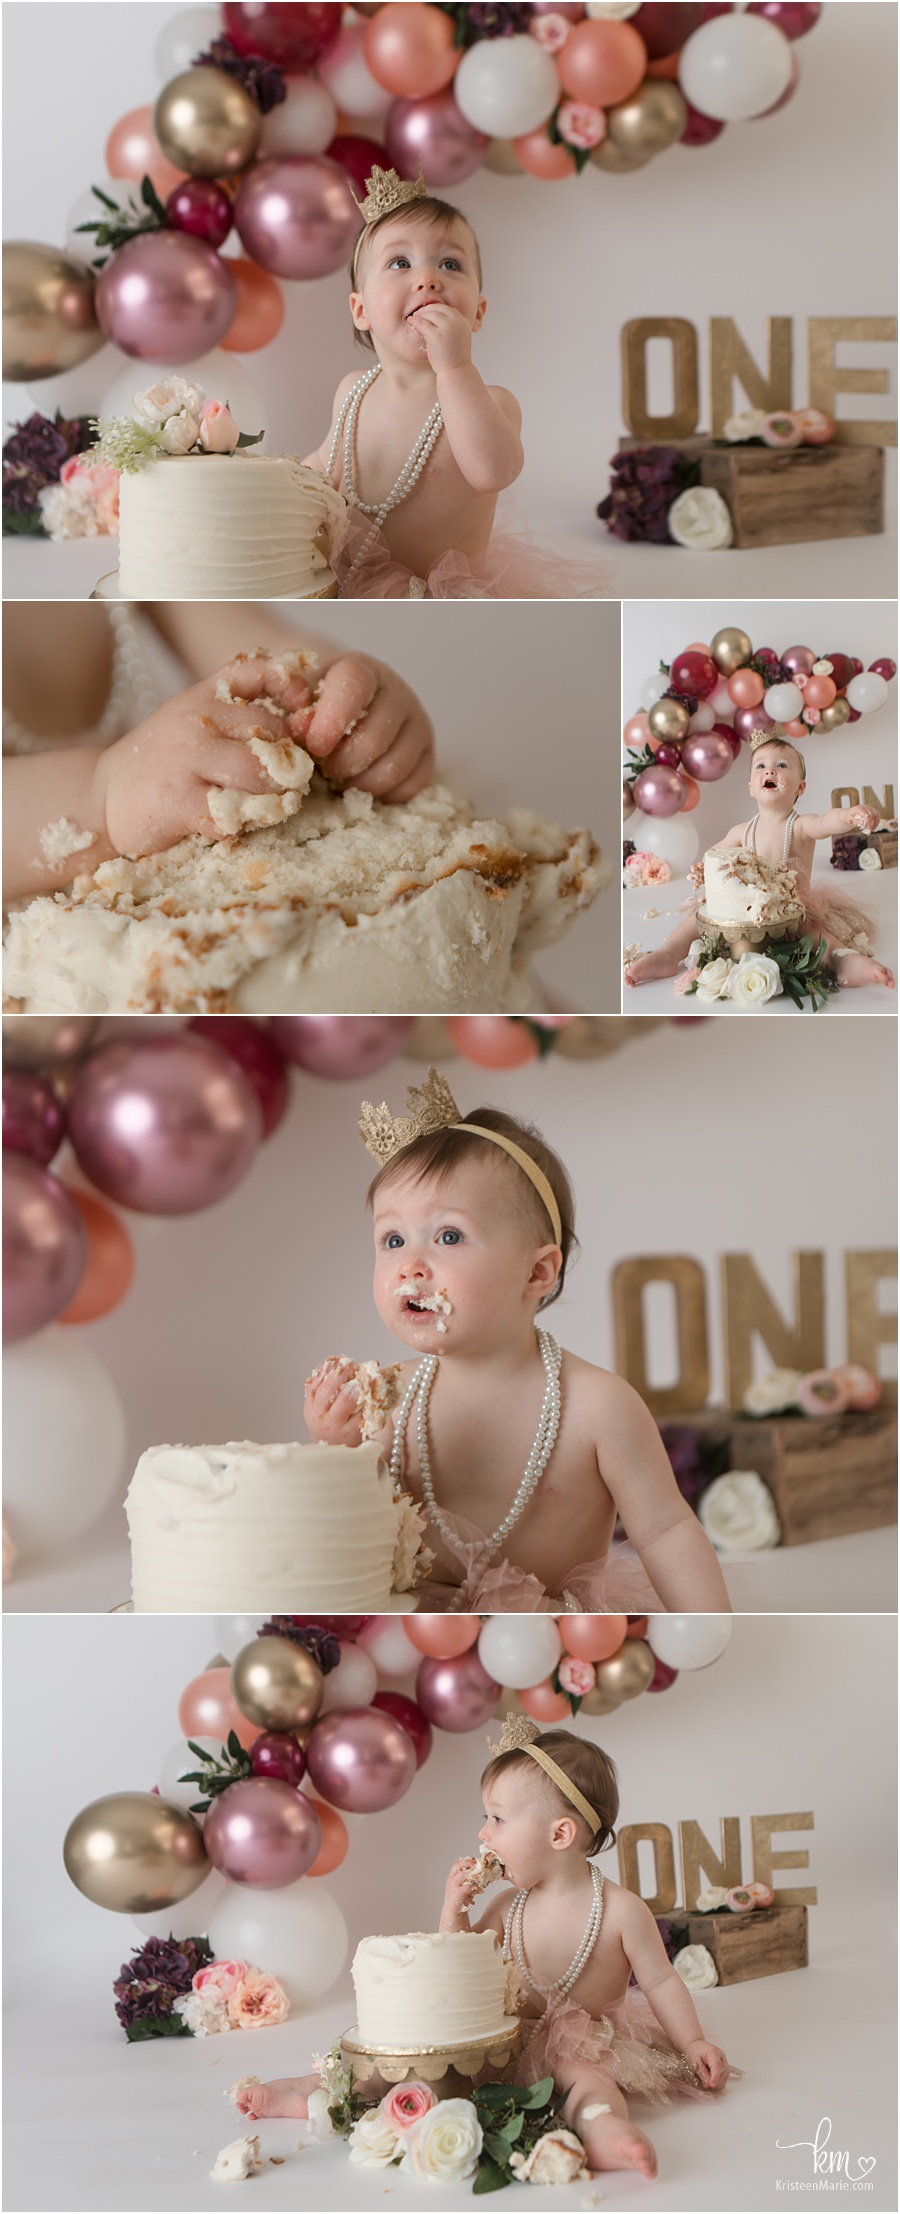 maroon and gold floral cake smash with balloon arch - 1st birthday